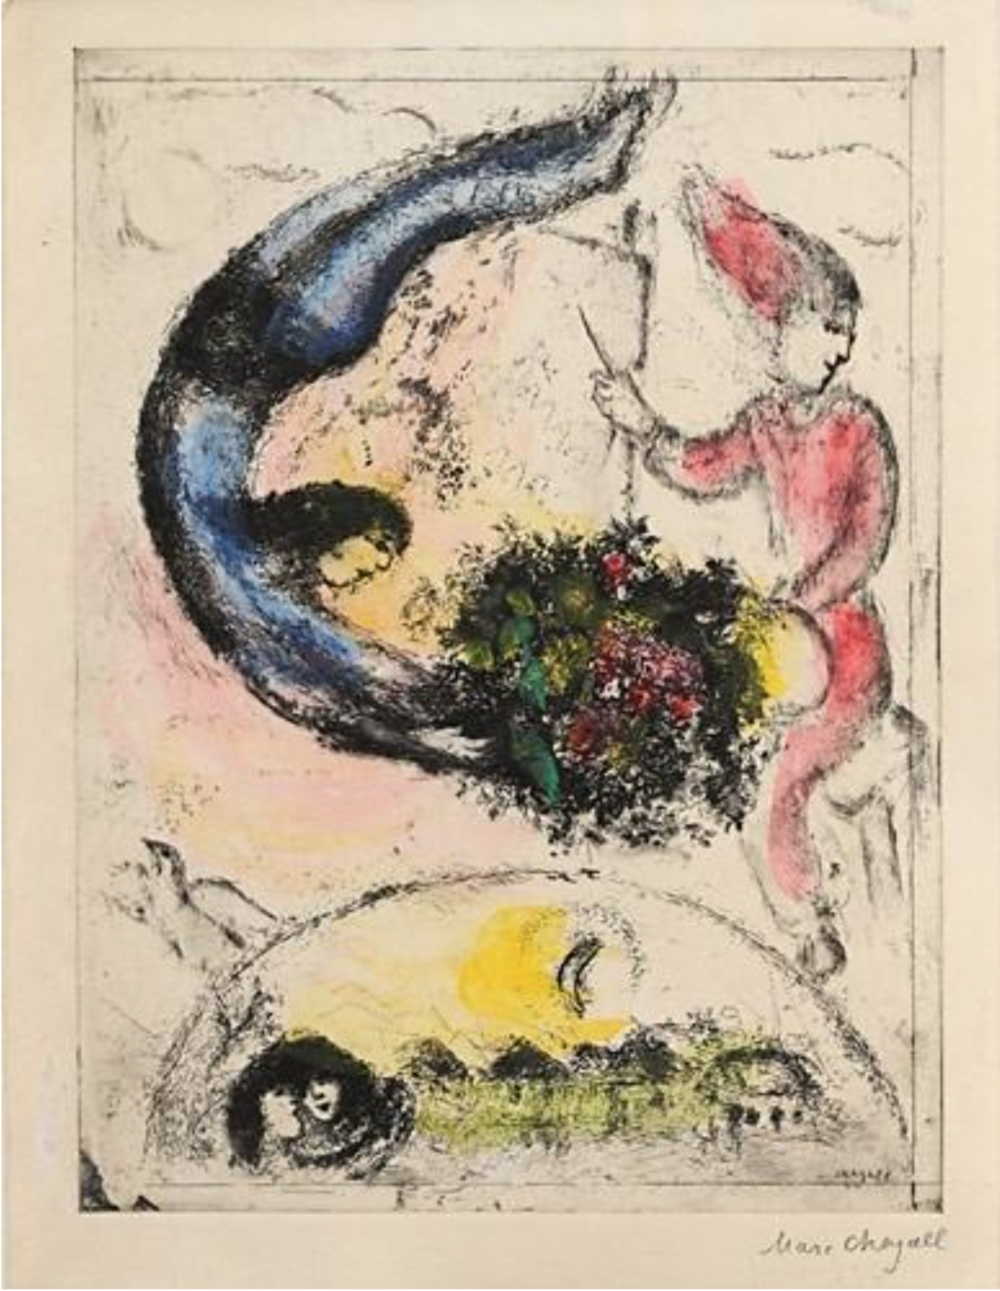 Das Geschenk - 3rd (final) State (k. 96), 1944-45 Etching with Hand-Coloring 10.25 x 7.25